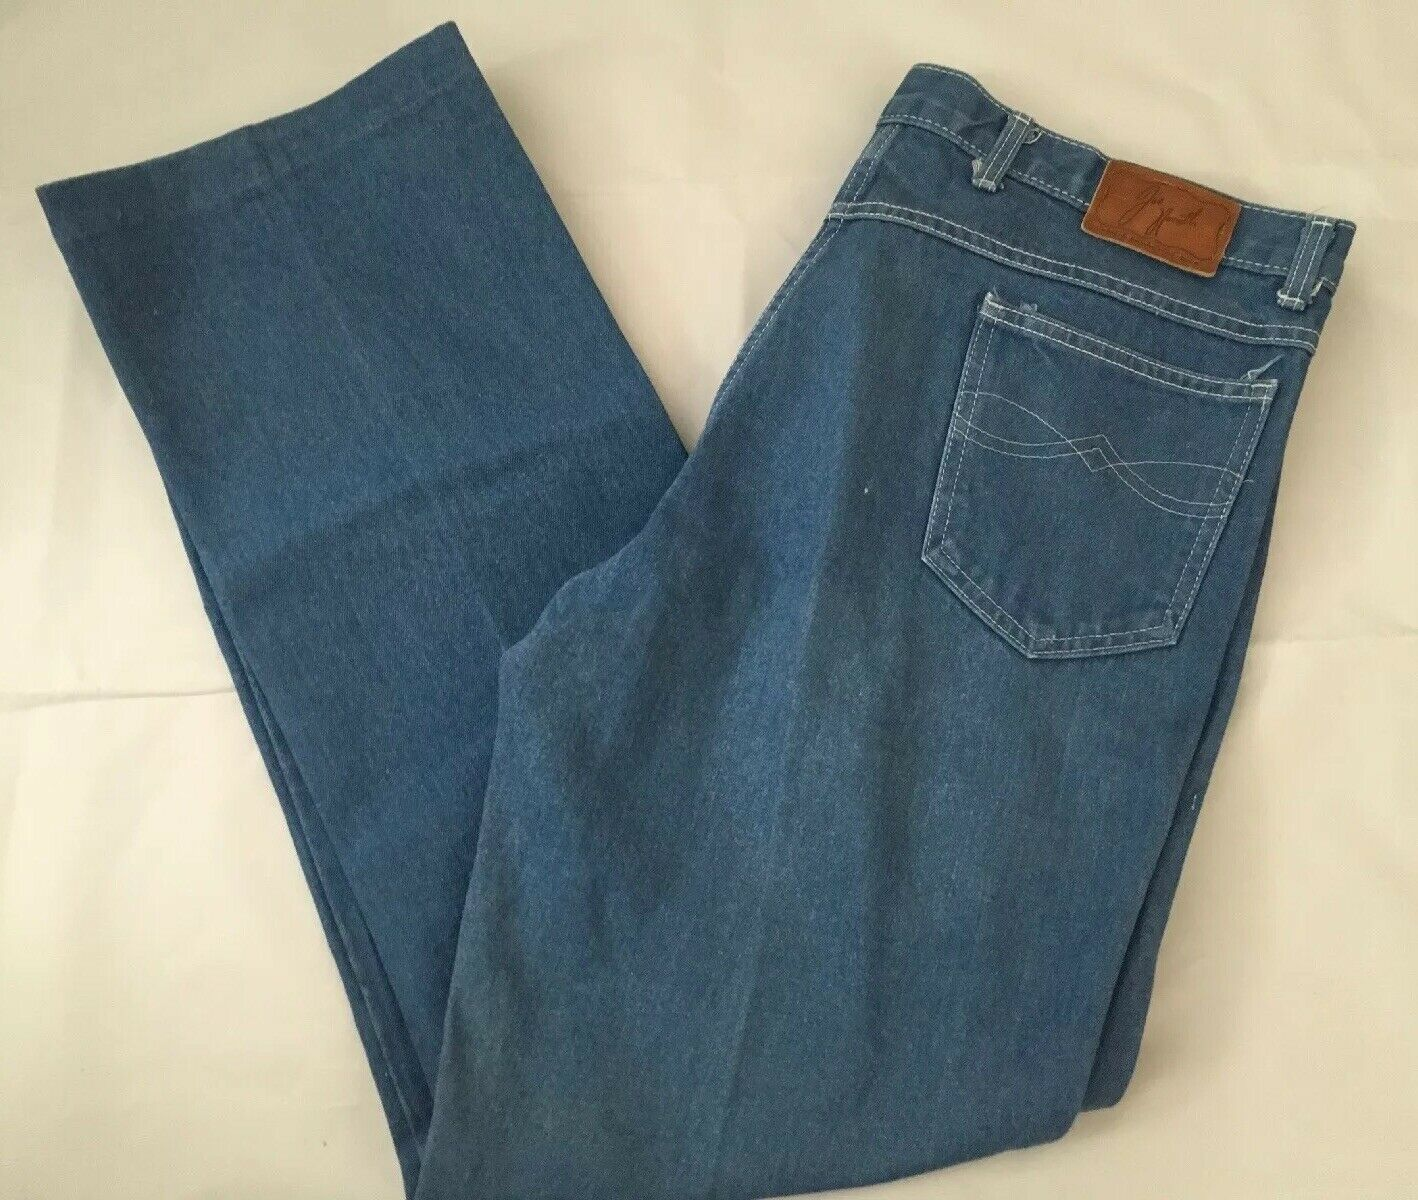 Vintage 1970-80's Mens Joe Namath bluee Jeans Pants Broadway USA, Sz 42x30